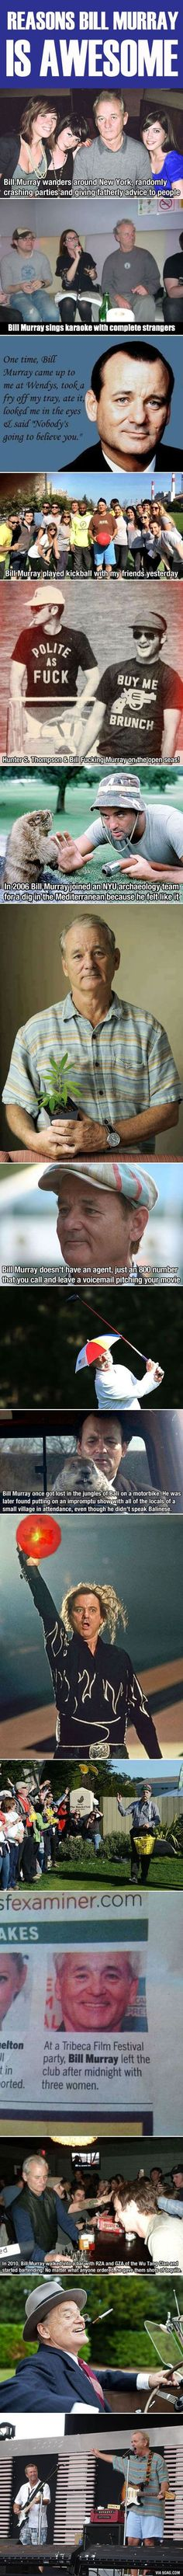 Love Bill Murray.  I met him once and he was hilarious, right then I knew it was true love.  LOL.